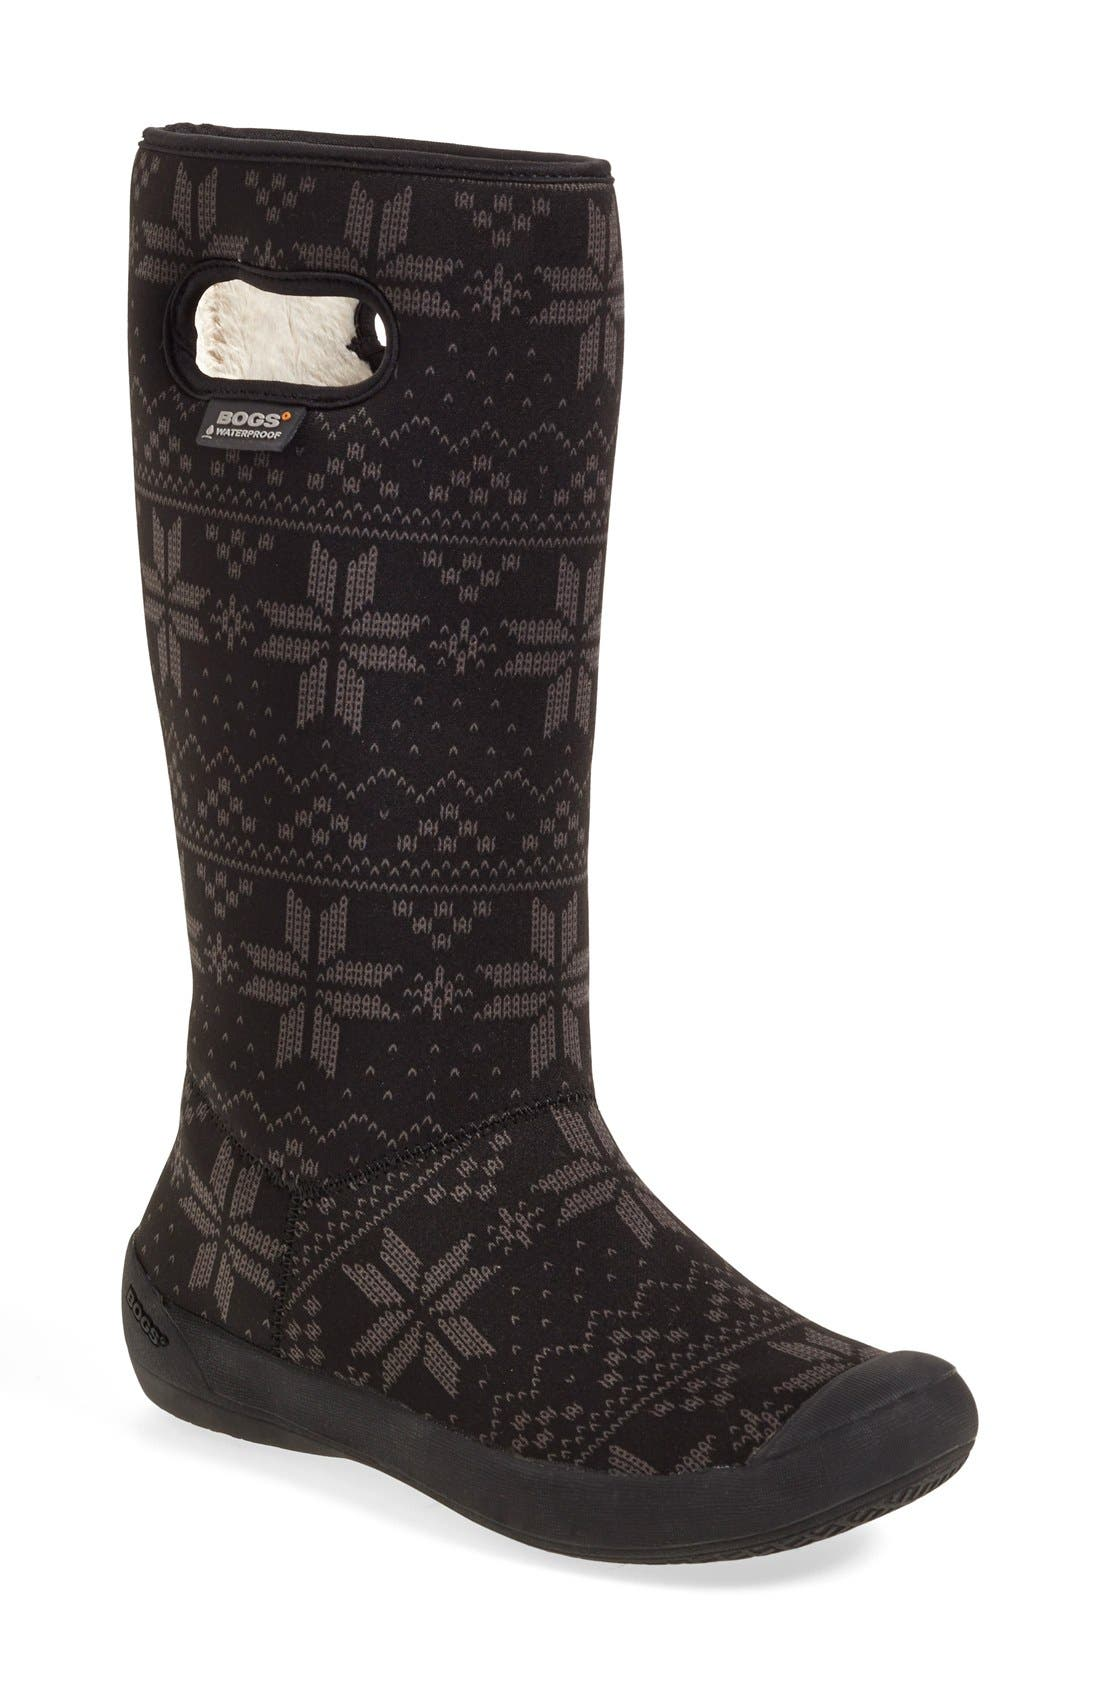 Main Image - Bogs 'Summit - Sweater' Waterproof Boot (Women)